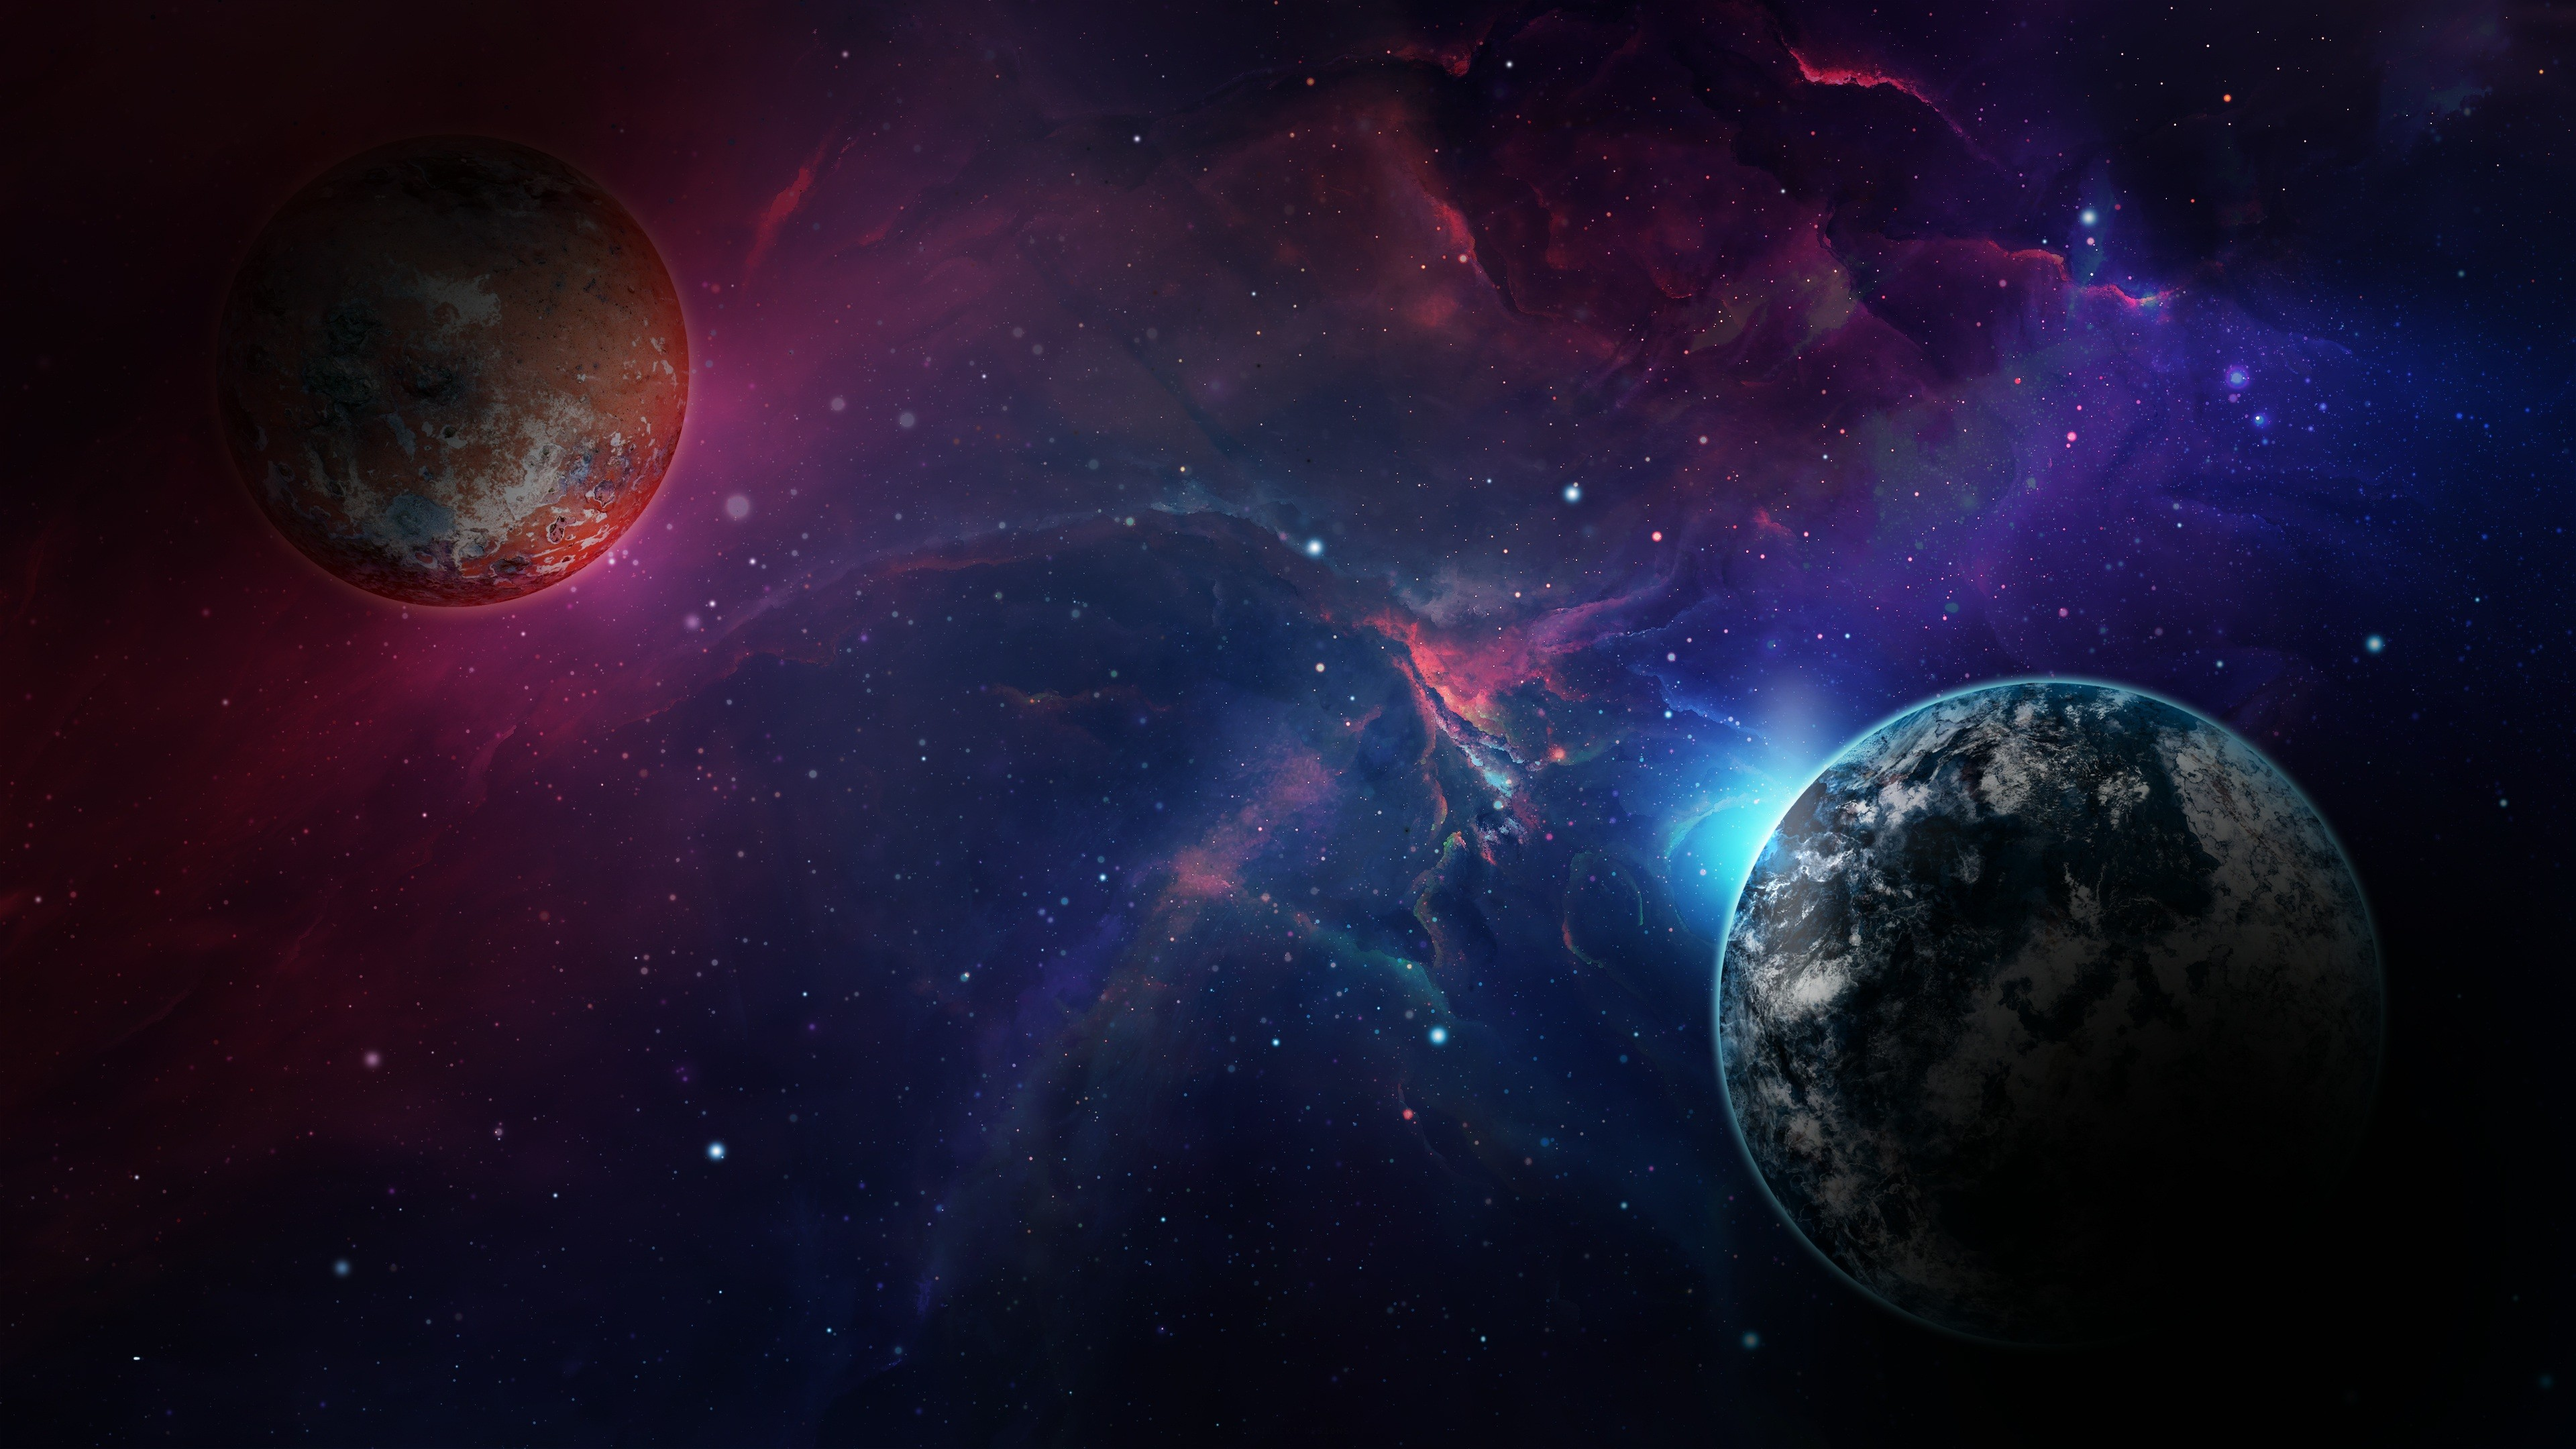 Galaxy Space Wallpaper For Android: Wallpaper Space, Galaxy, Planet, 4k, Space #17043